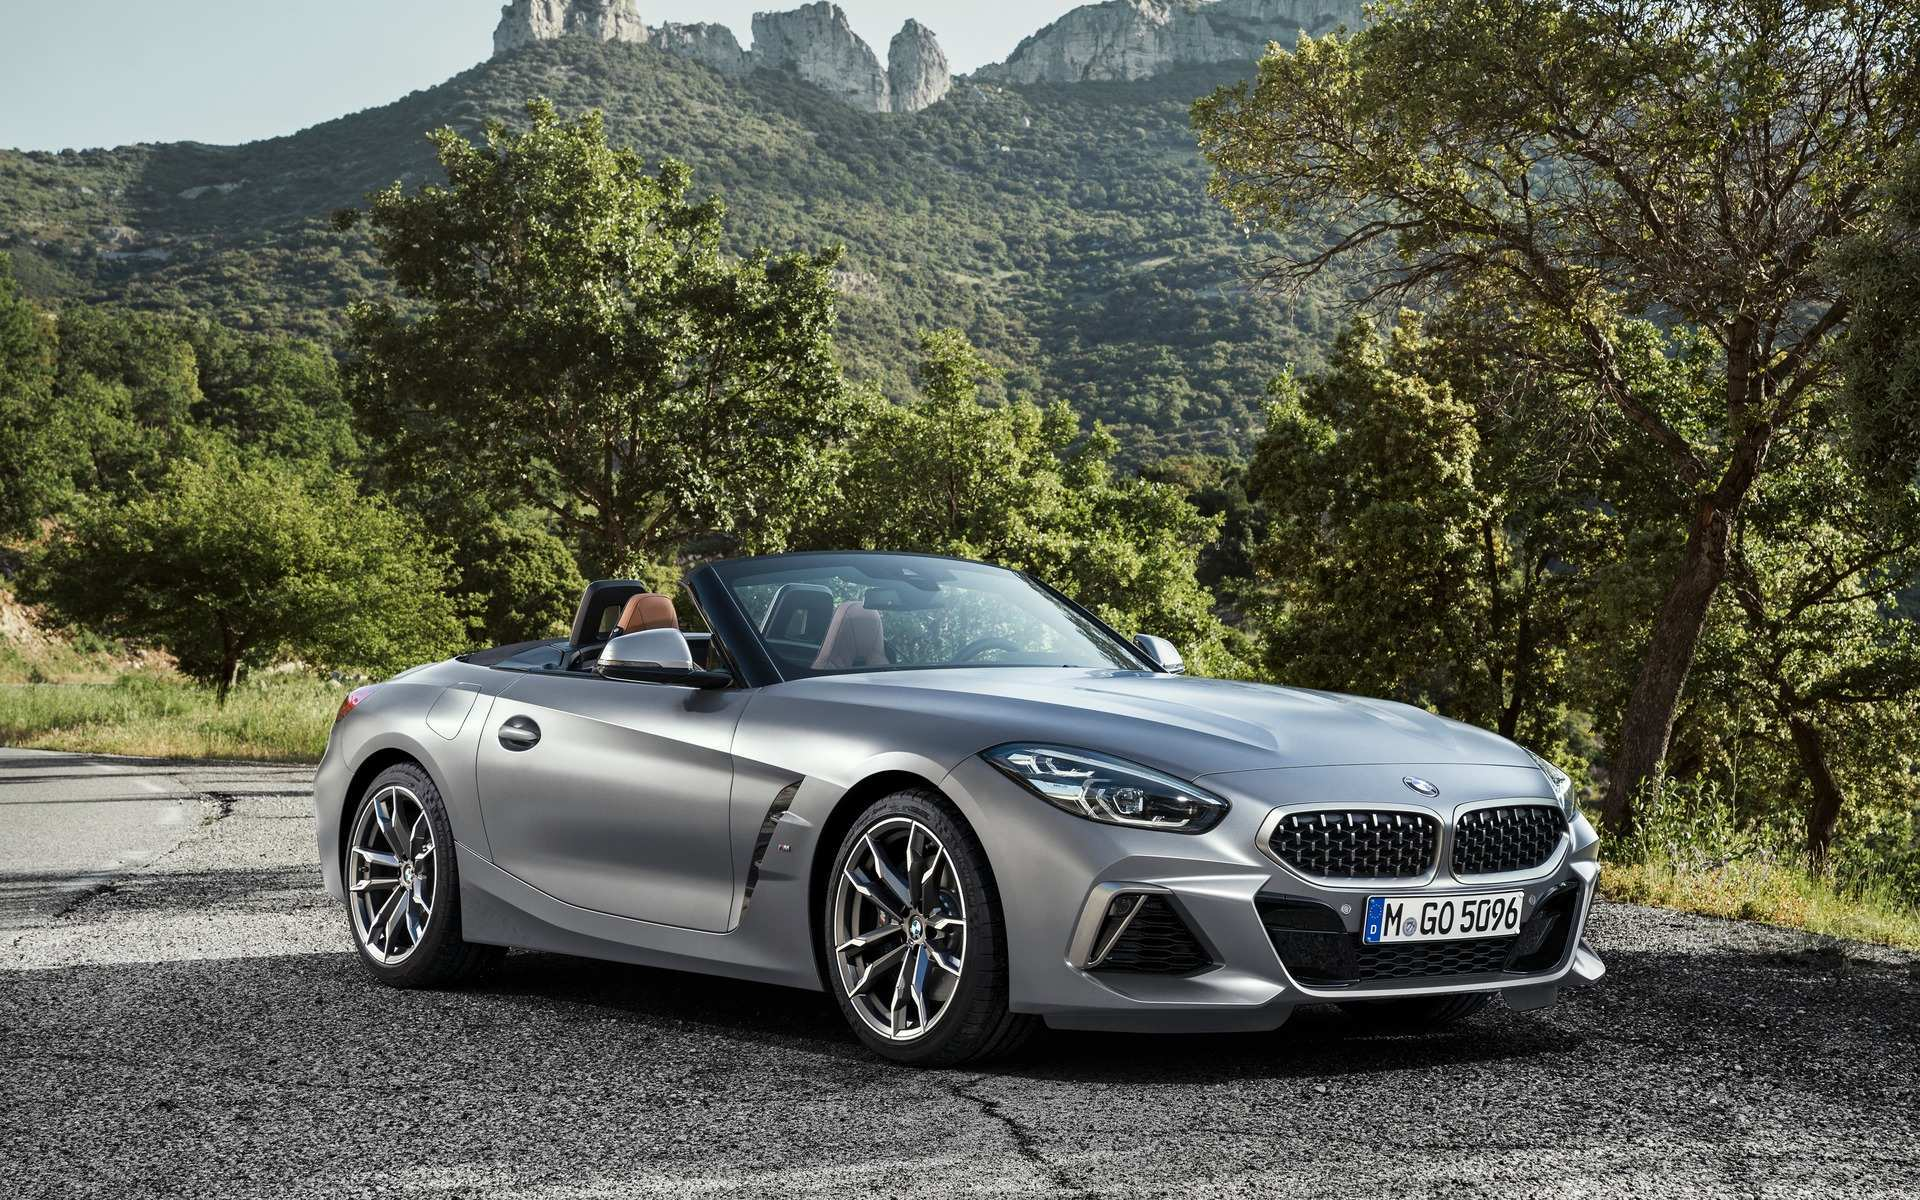 34 All New 2019 Bmw Roadster Spy Shoot